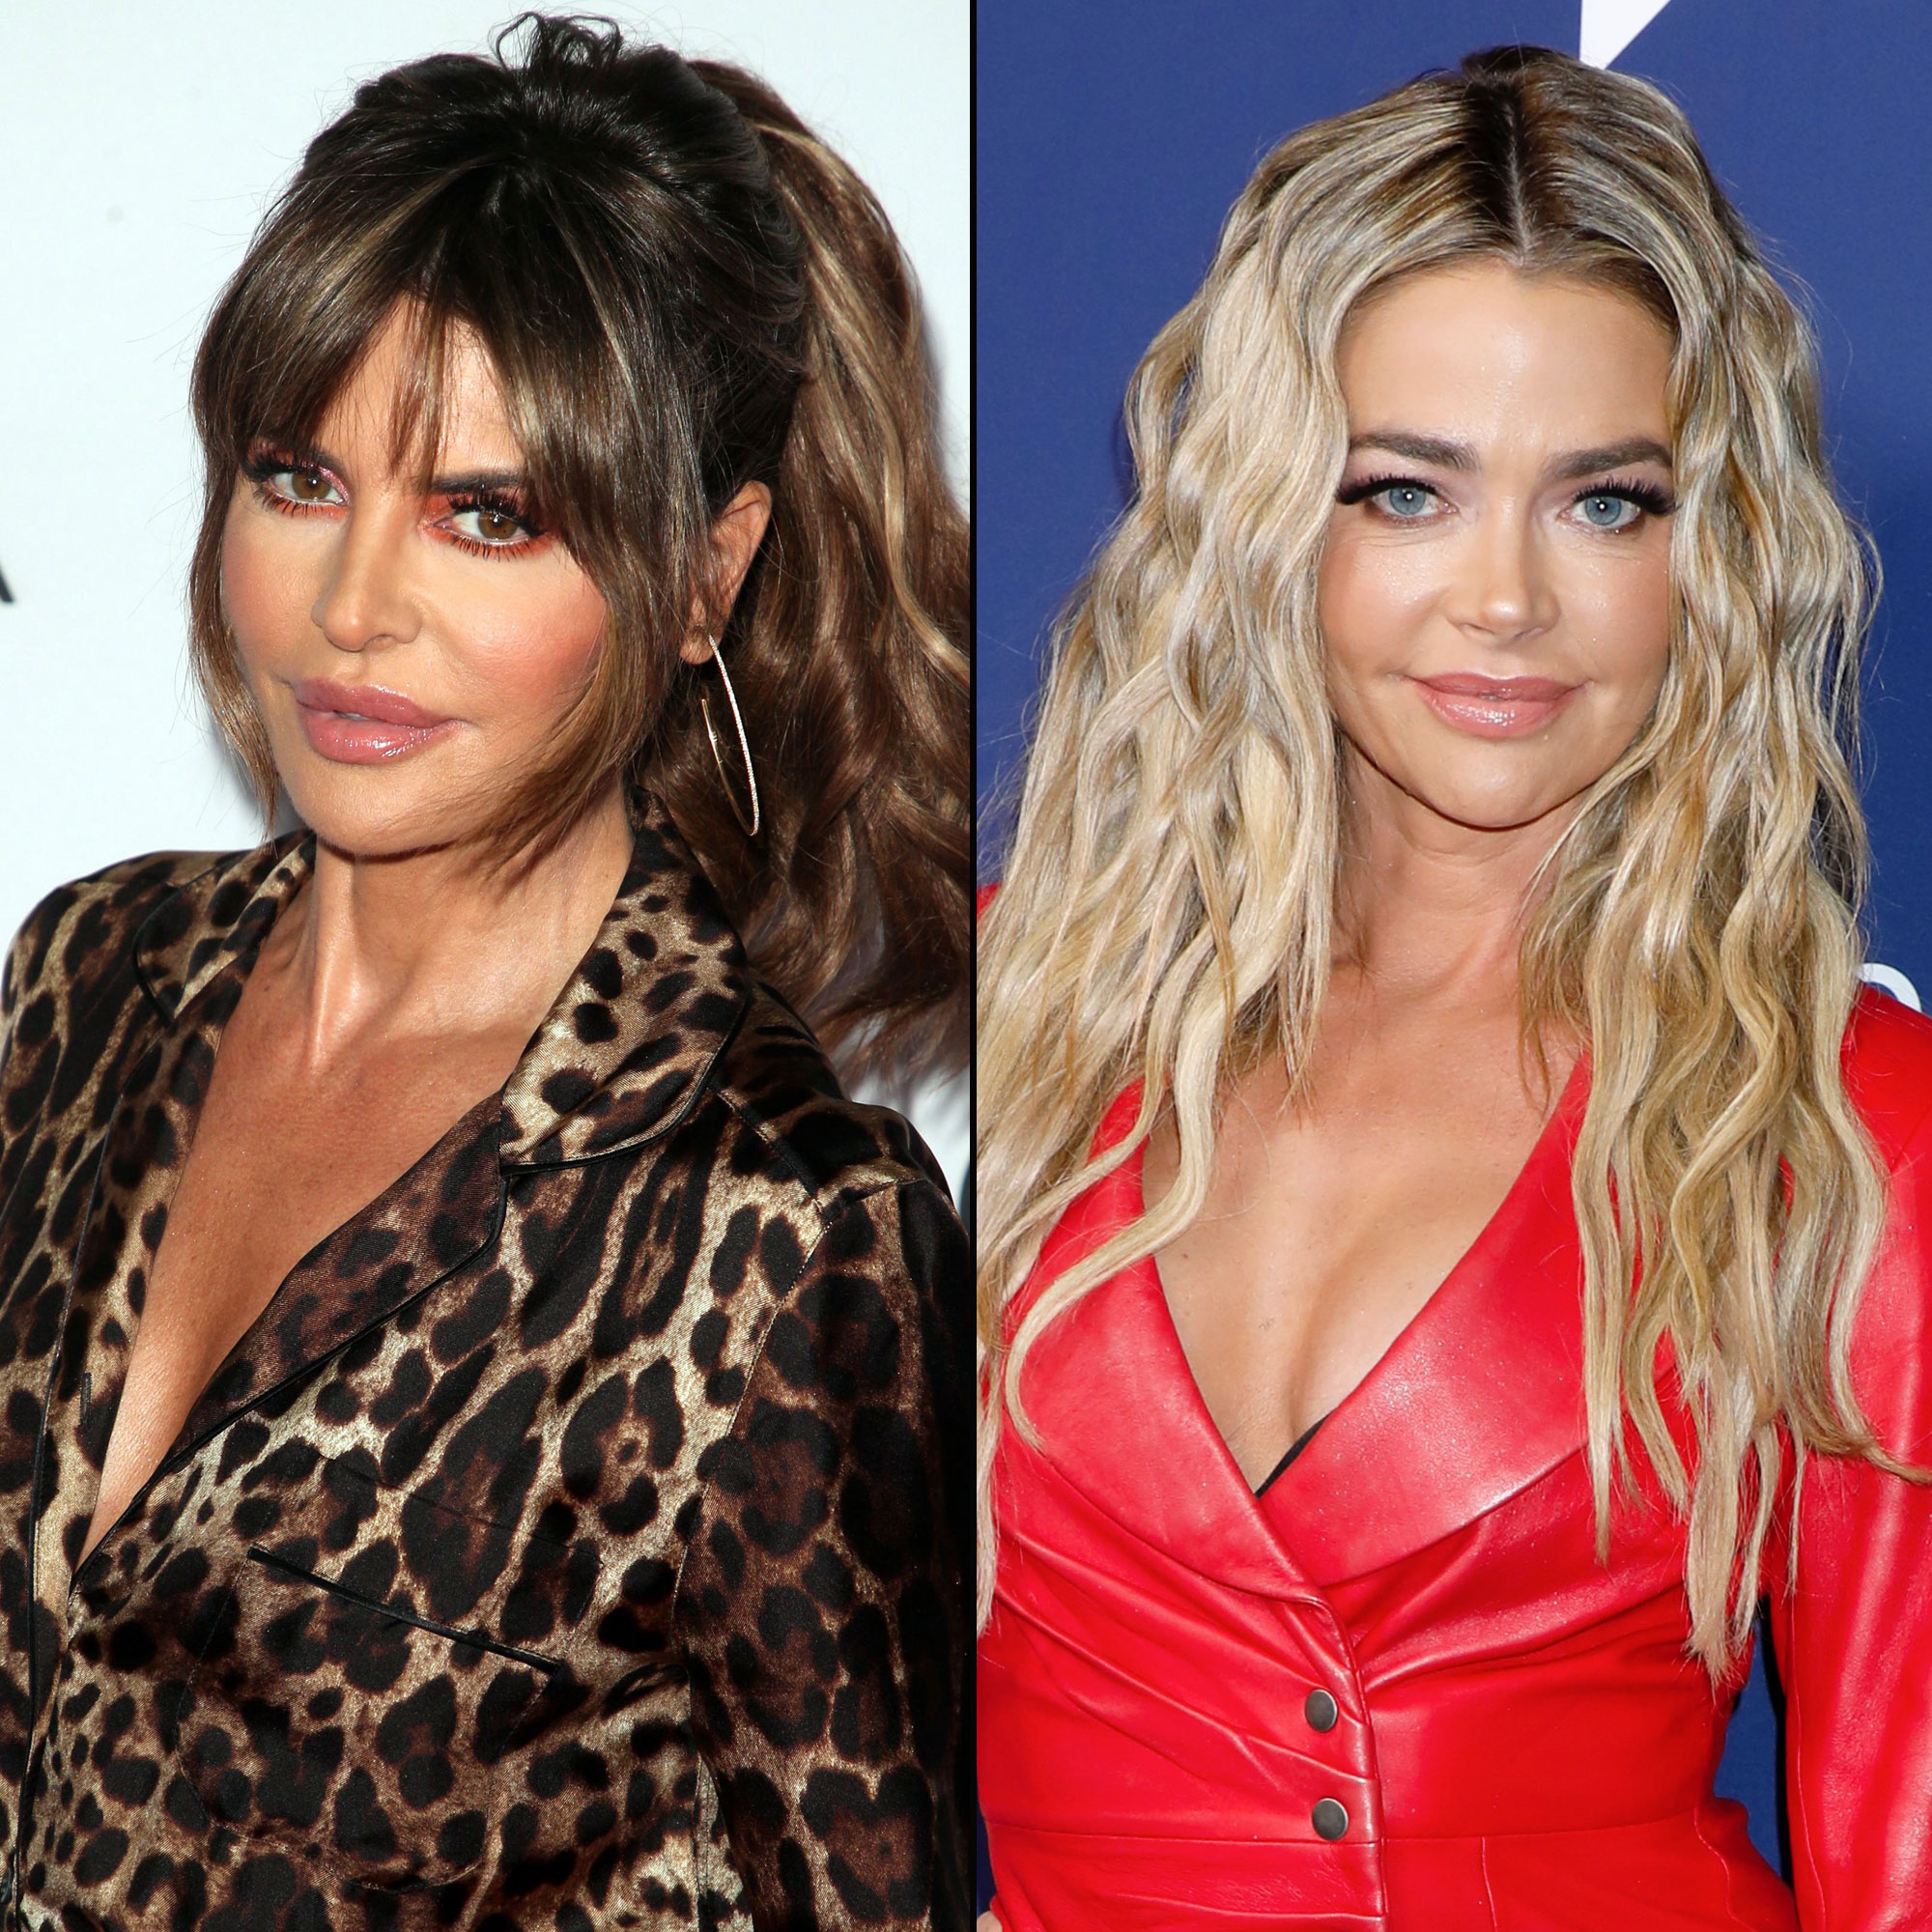 Brandi Glanville Details Alleged Hookup with Denise Richards